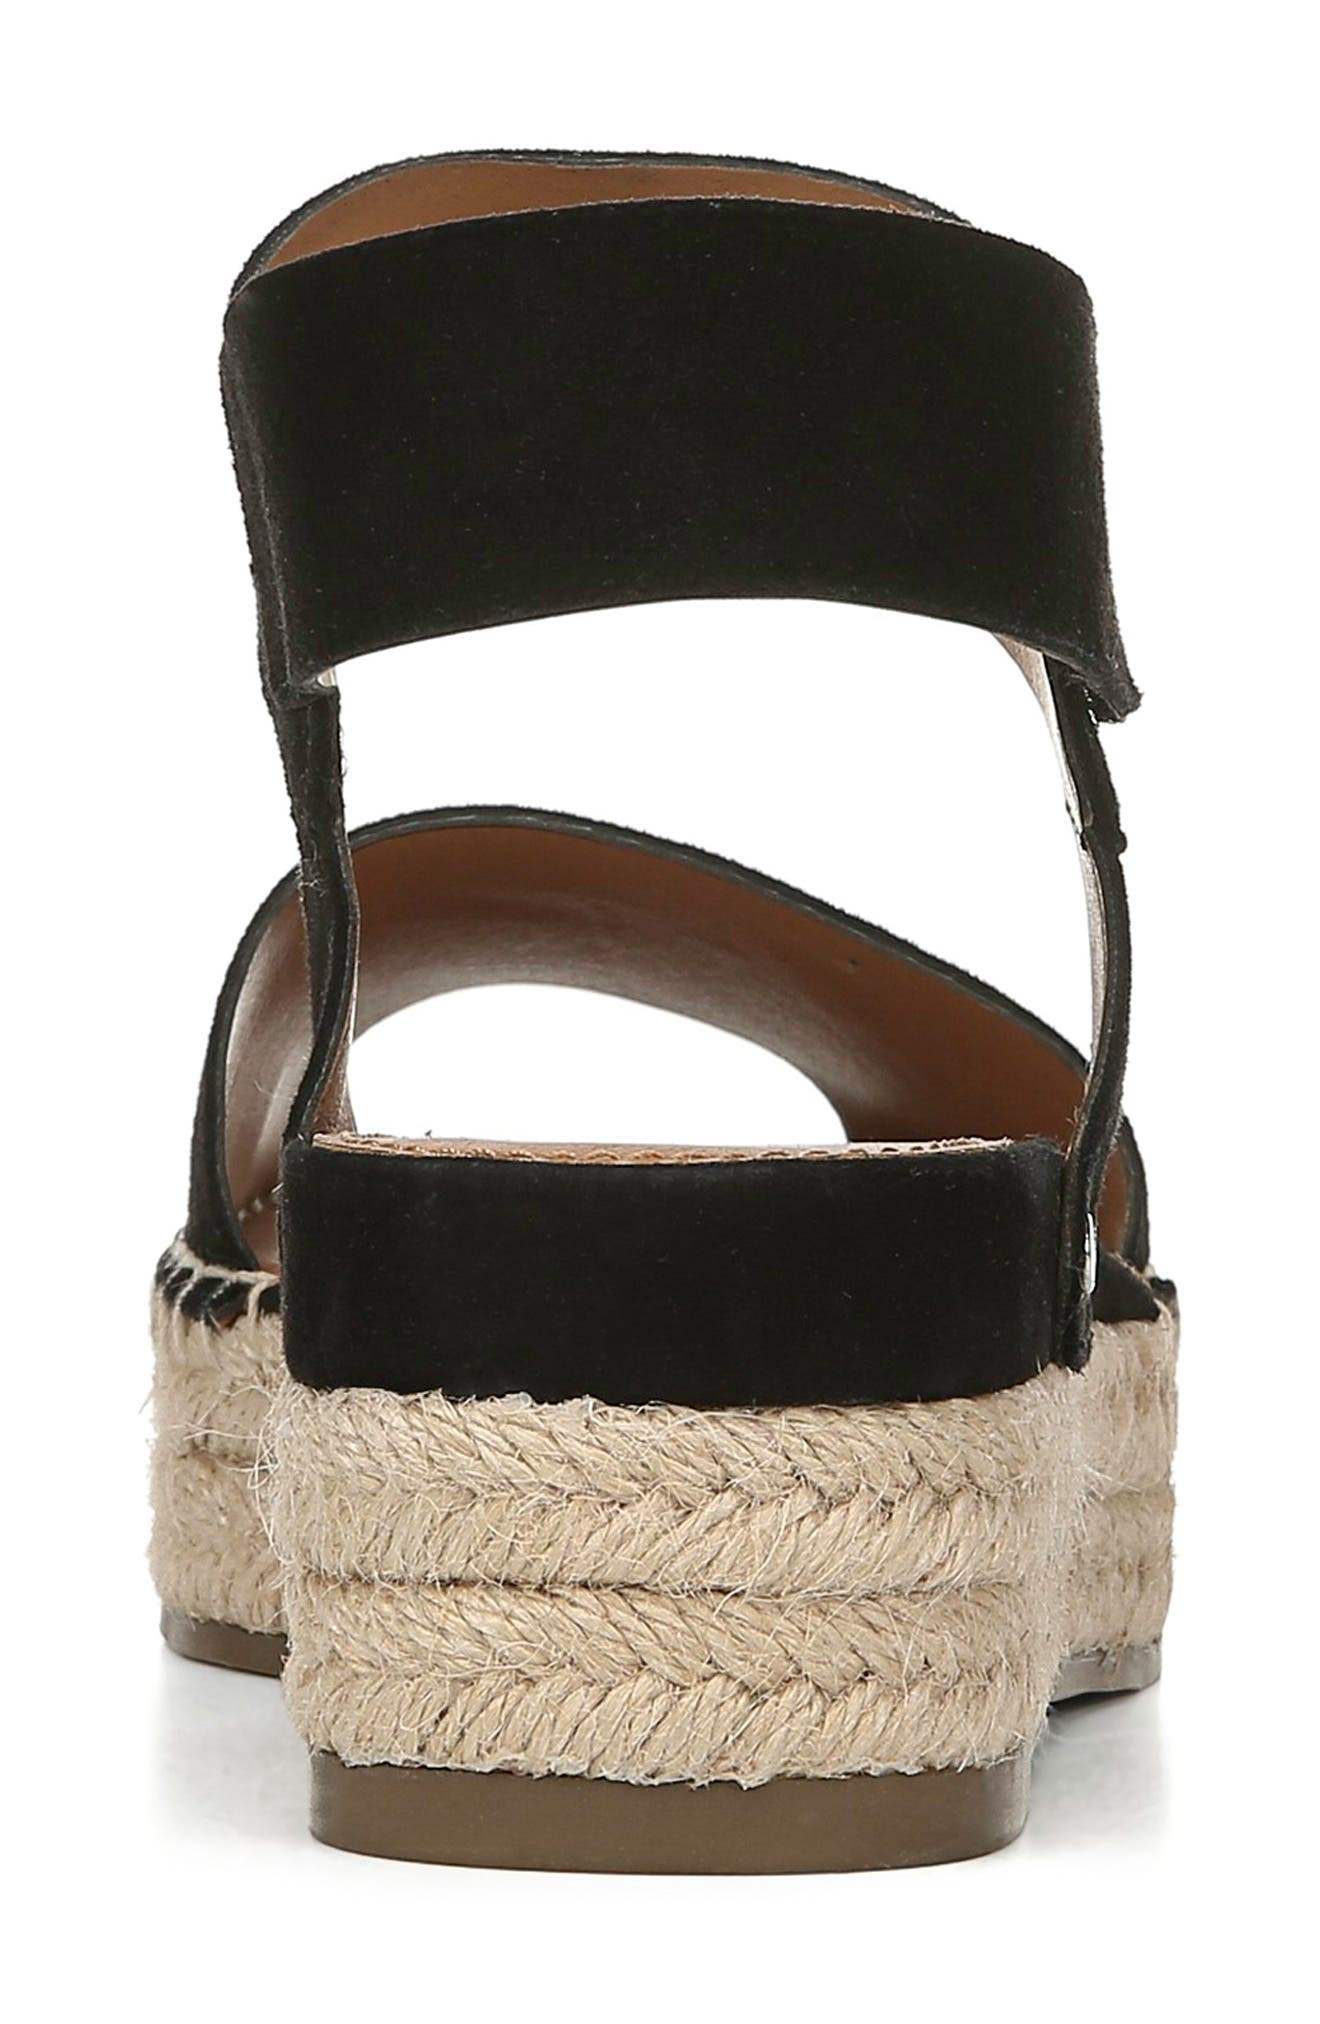 SARTO BY FRANCO SARTO, Oak Platform Wedge Espadrille, Alternate thumbnail 7, color, BLACK SUEDE